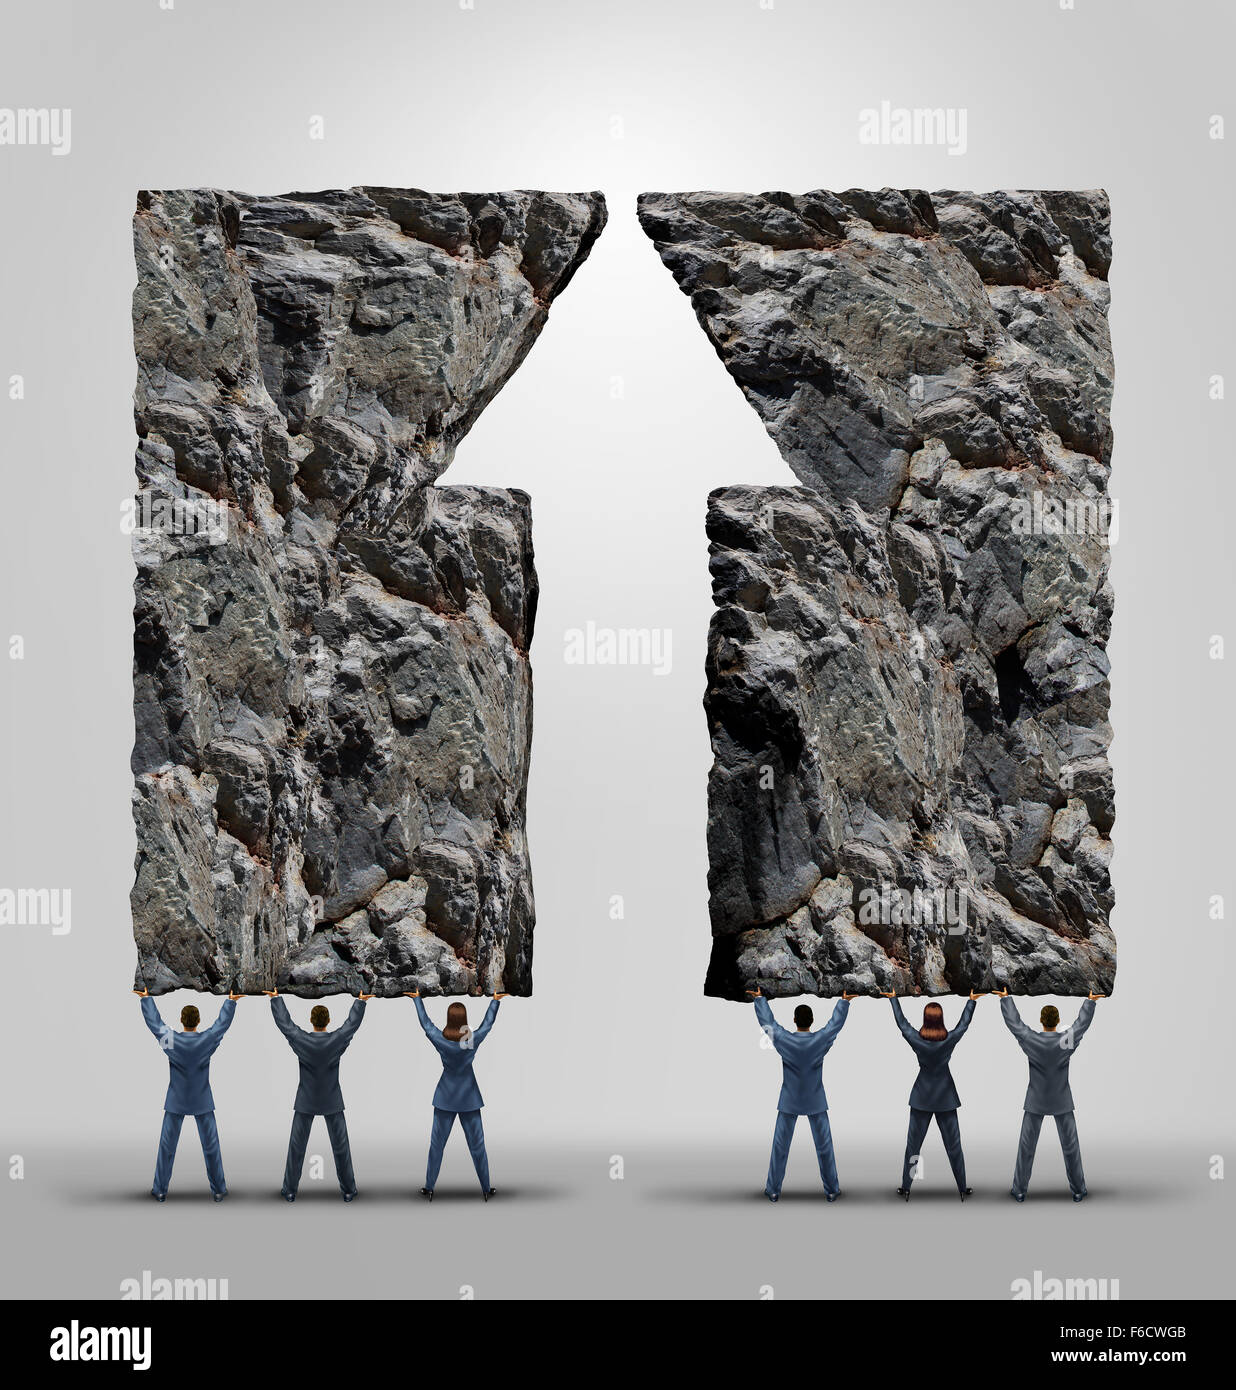 Business team support and company teamwork success and motivation concept as two teams joining together lifting - Stock Image